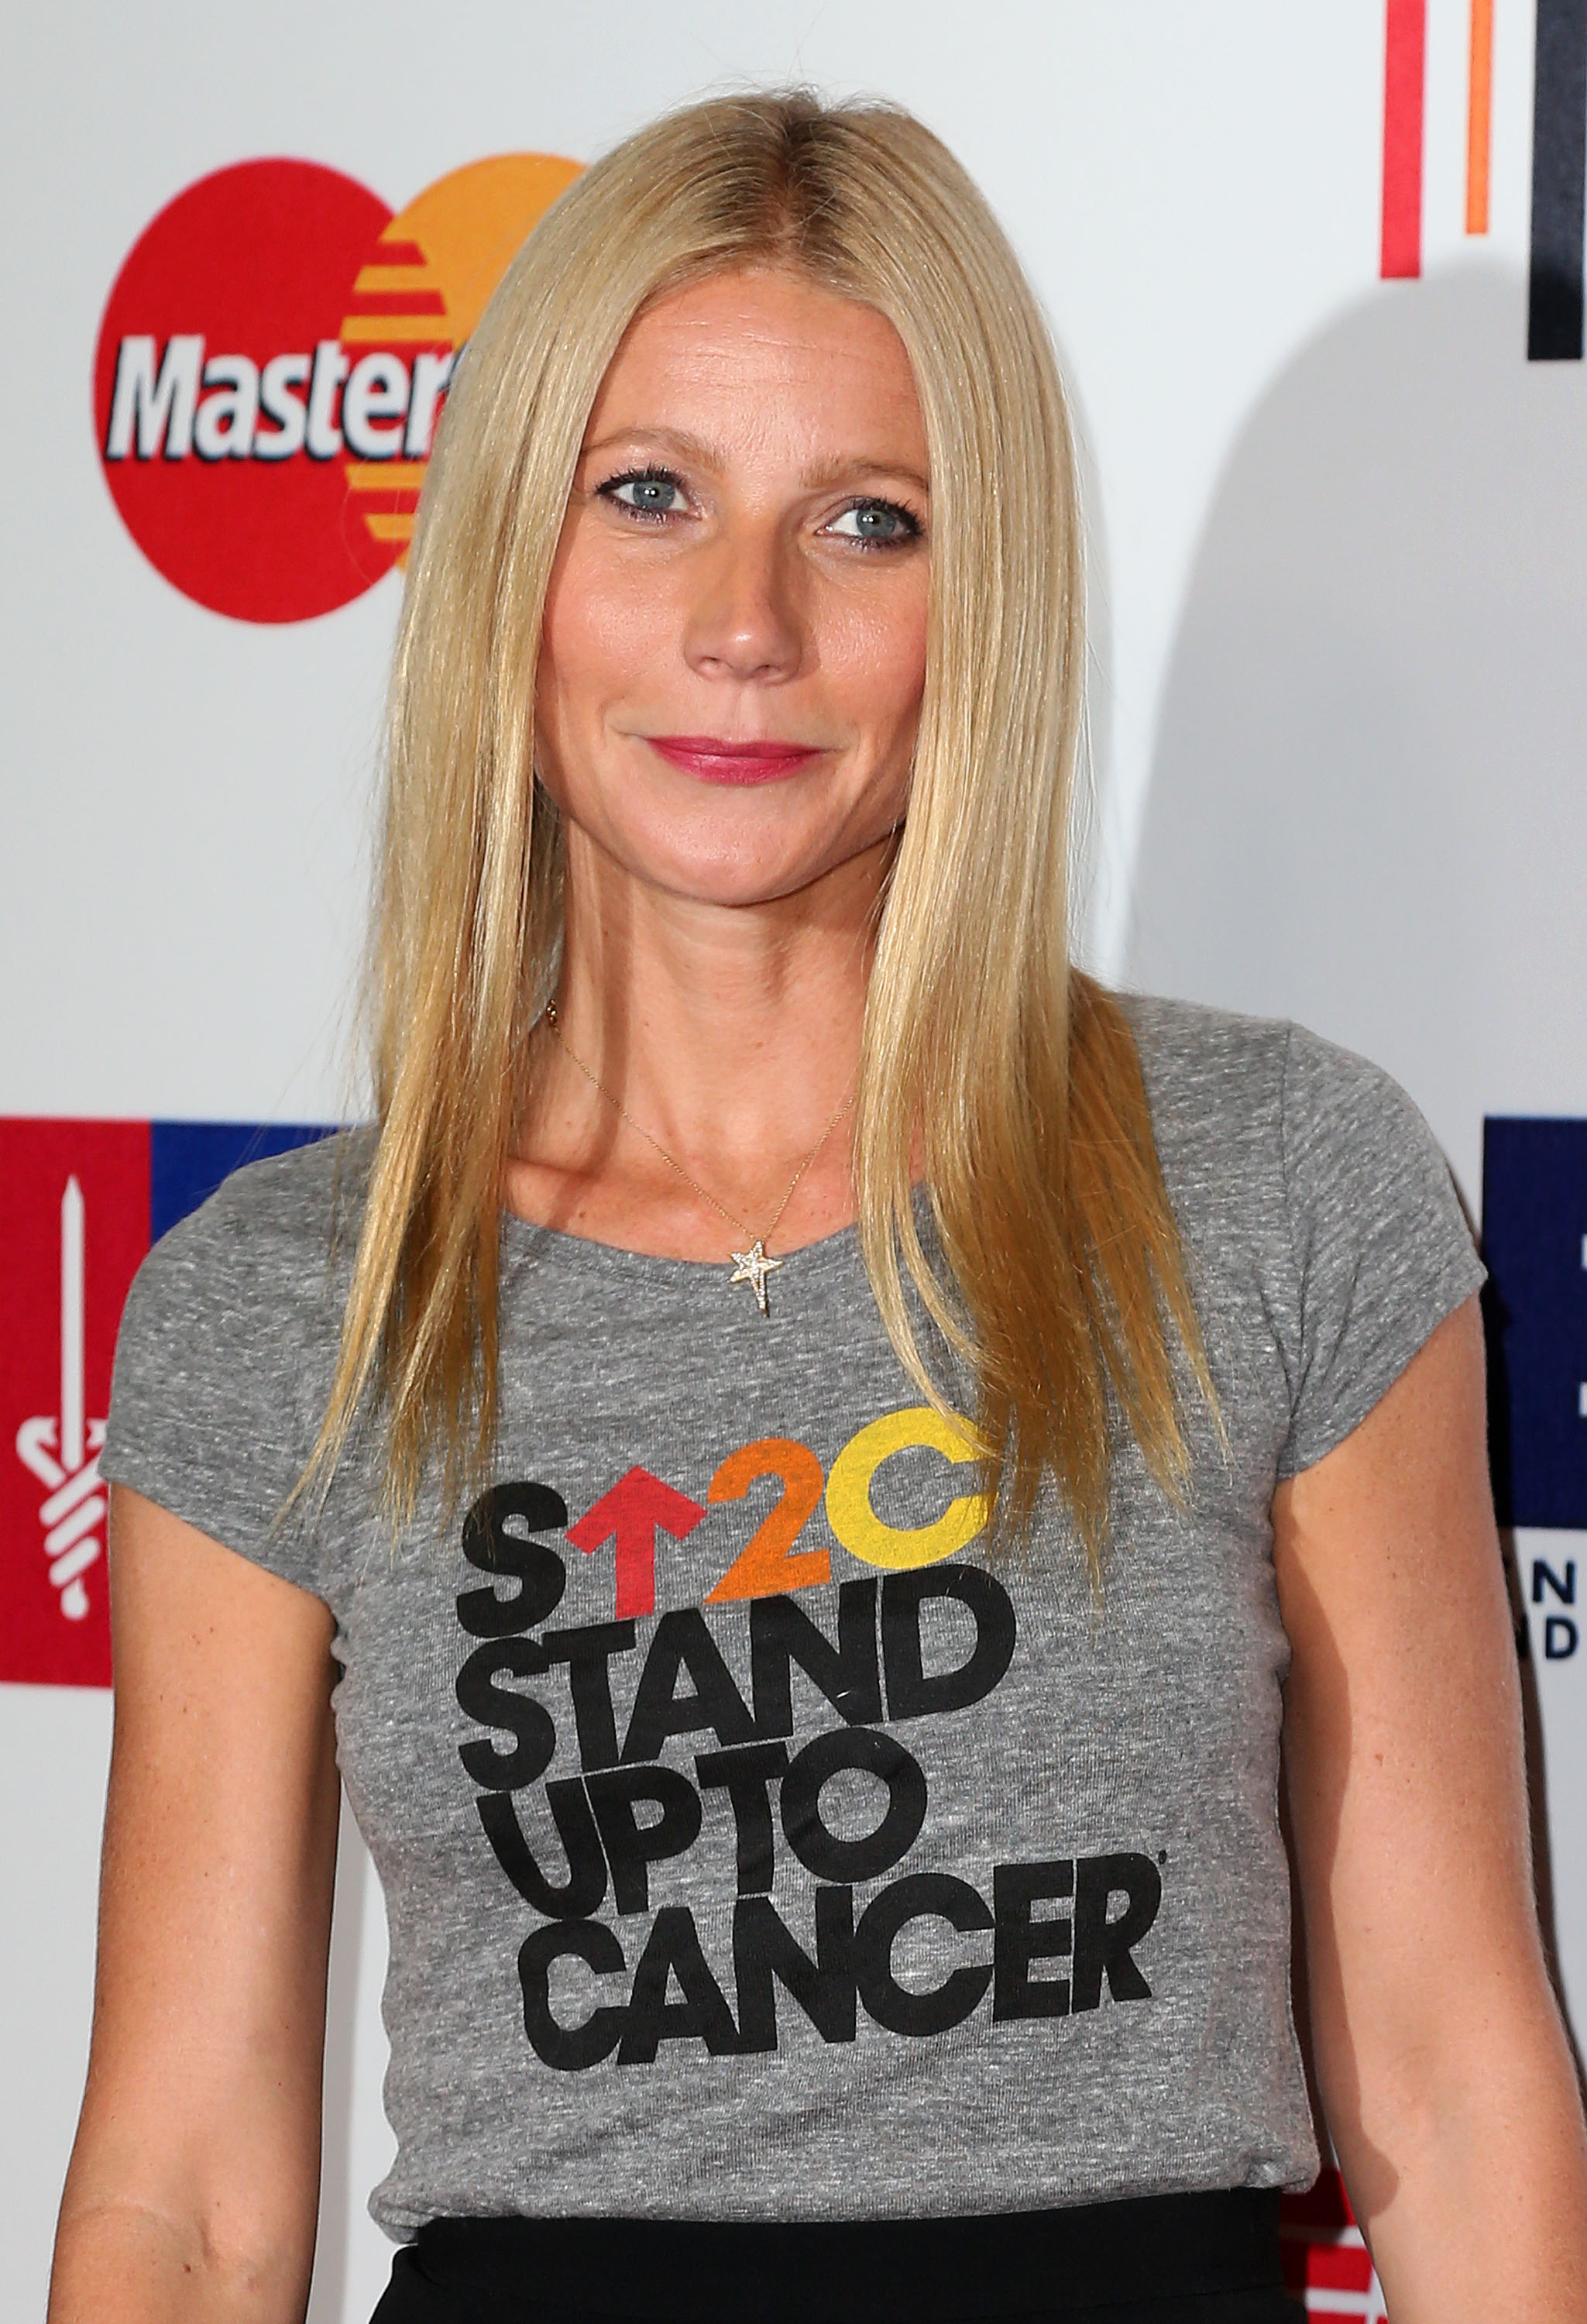 Actress Gwyneth Paltrow attends Hollywood Unites for the 4th Biennial Stand Up for Cancer (SU2C), at the Dolby Theatre, Sept. 5, 2014 in Hollywood, Calif. (Frederick M. Brown/Getty Images)